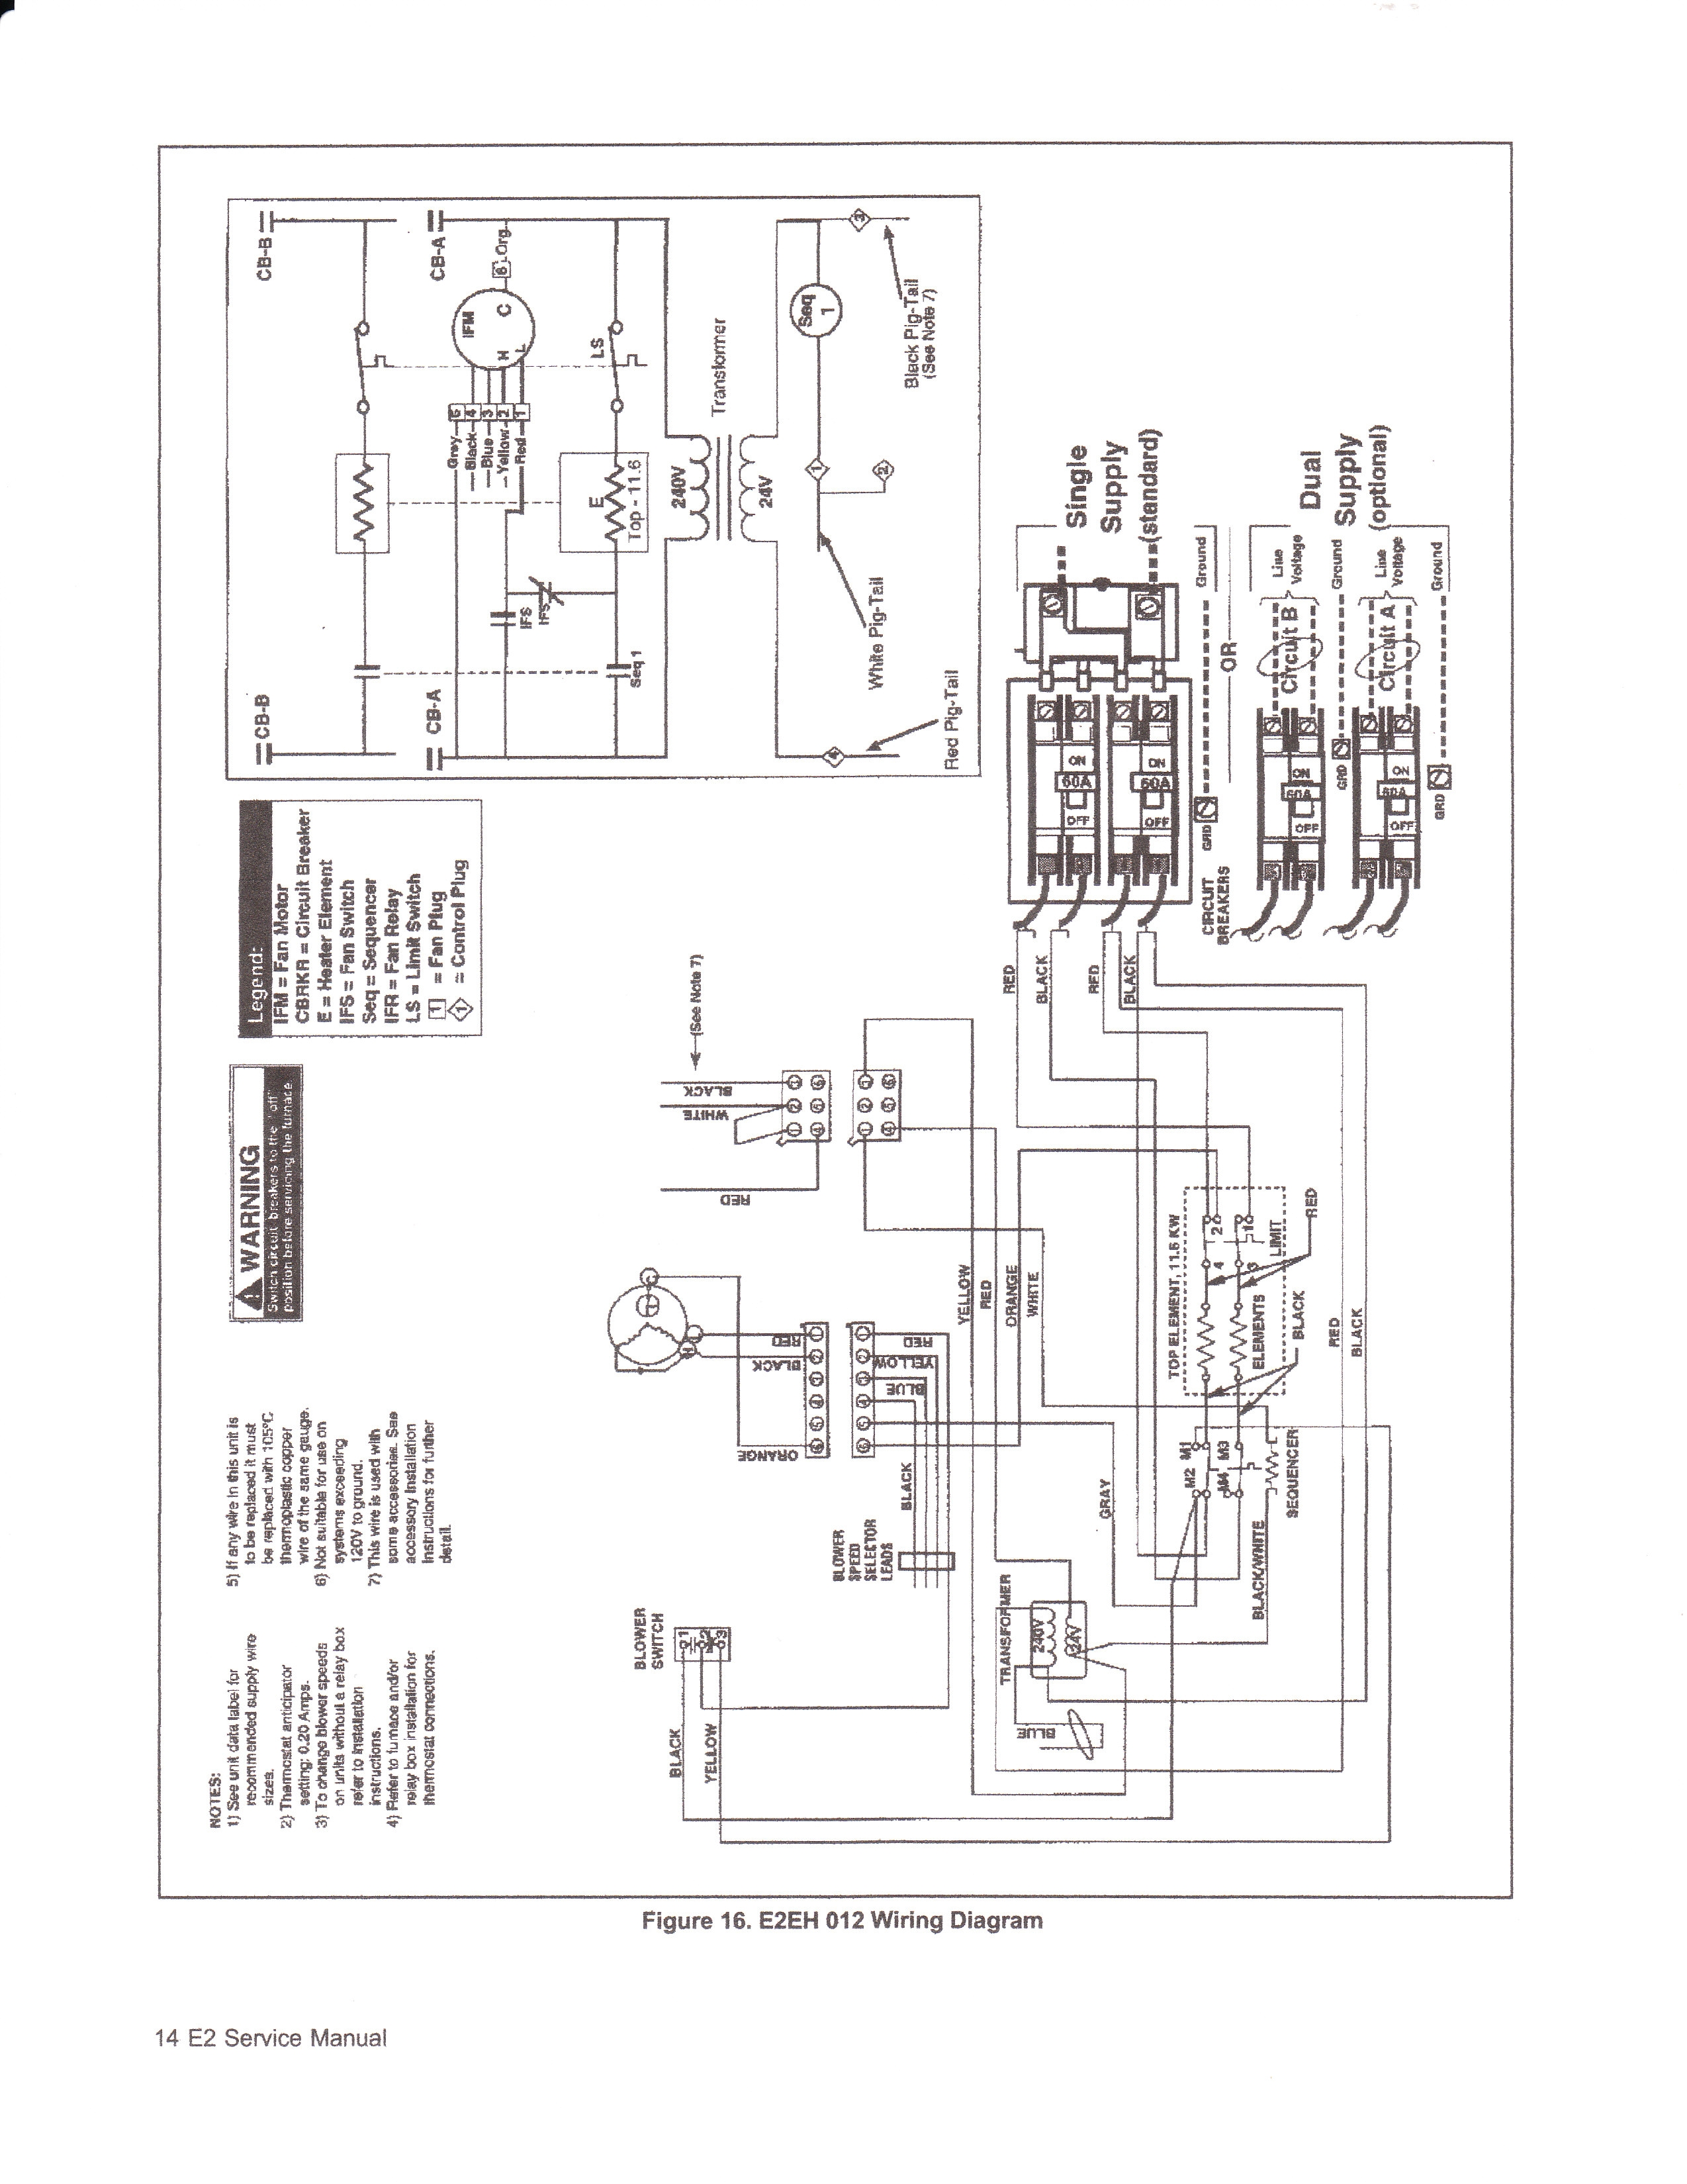 Coleman Evcon Furnace Wiring Diagram